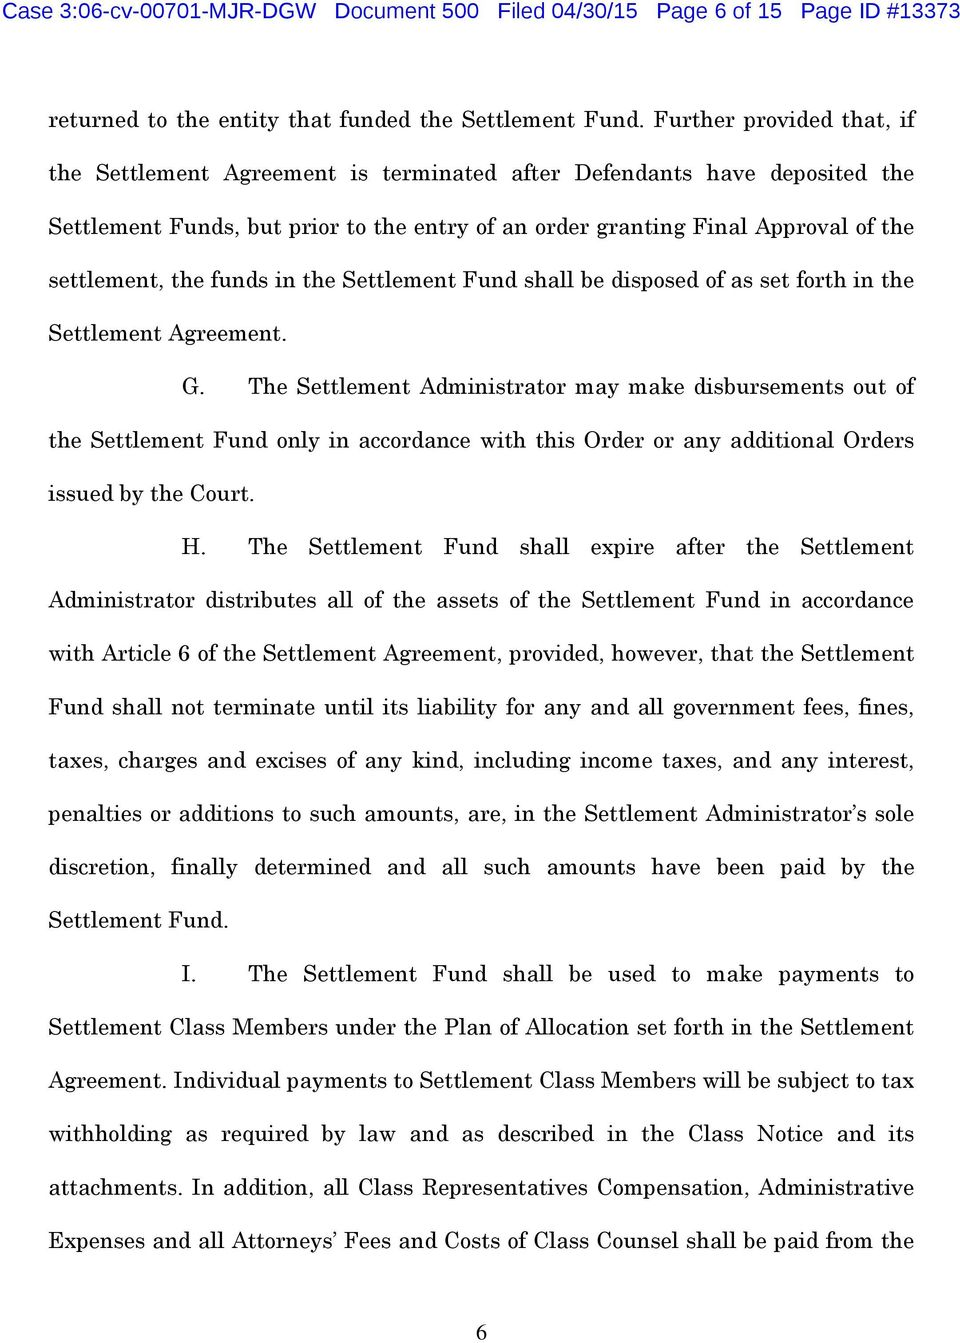 the funds in the Settlement Fund shall be disposed of as set forth in the Settlement Agreement. G.